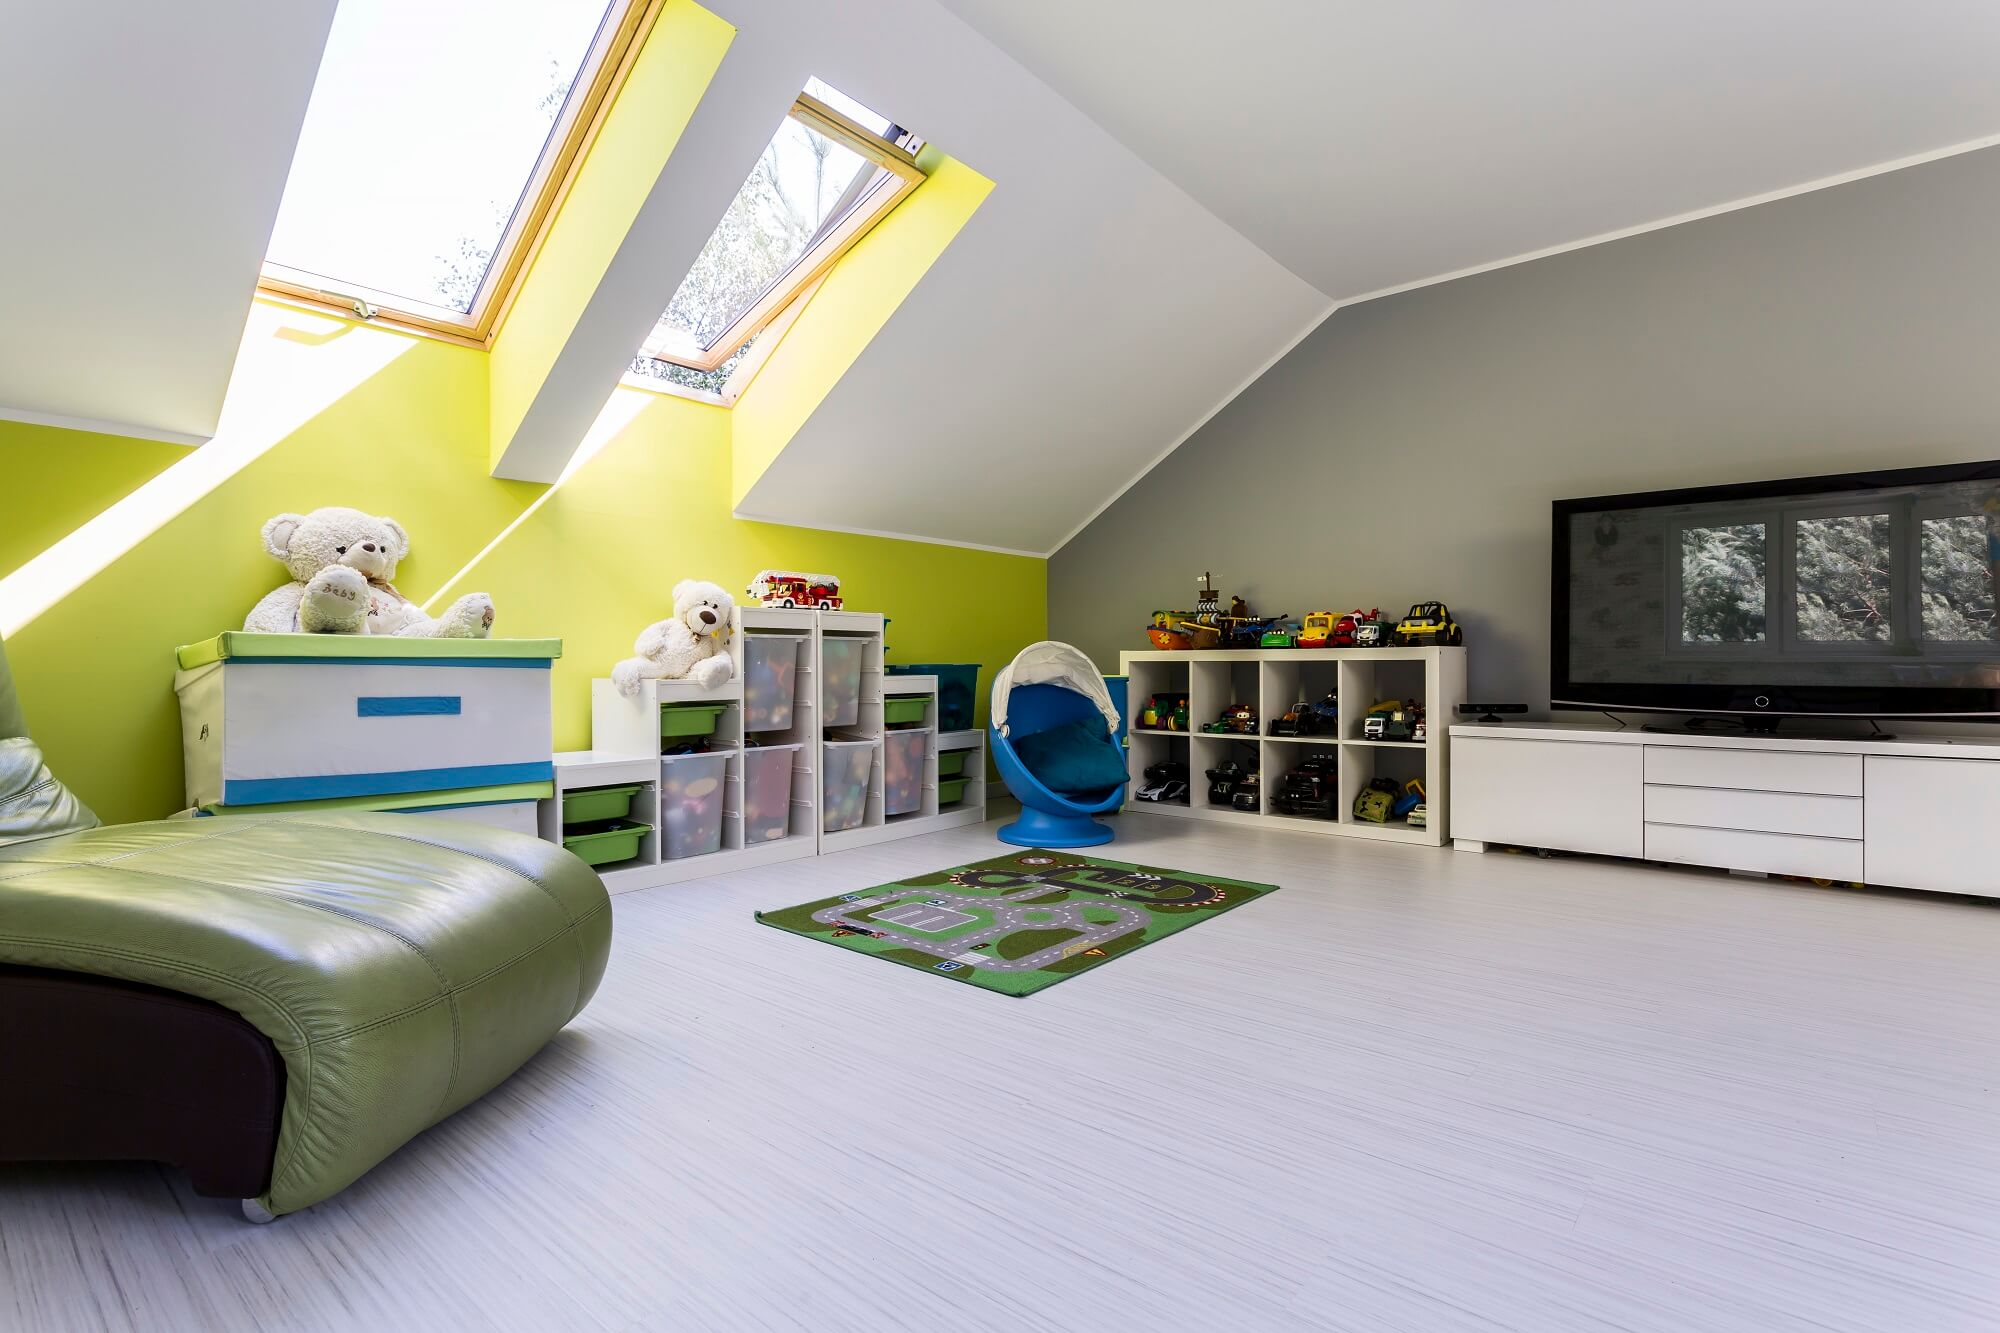 Child room at the attic with TV set, bed, chest of drawers and toys